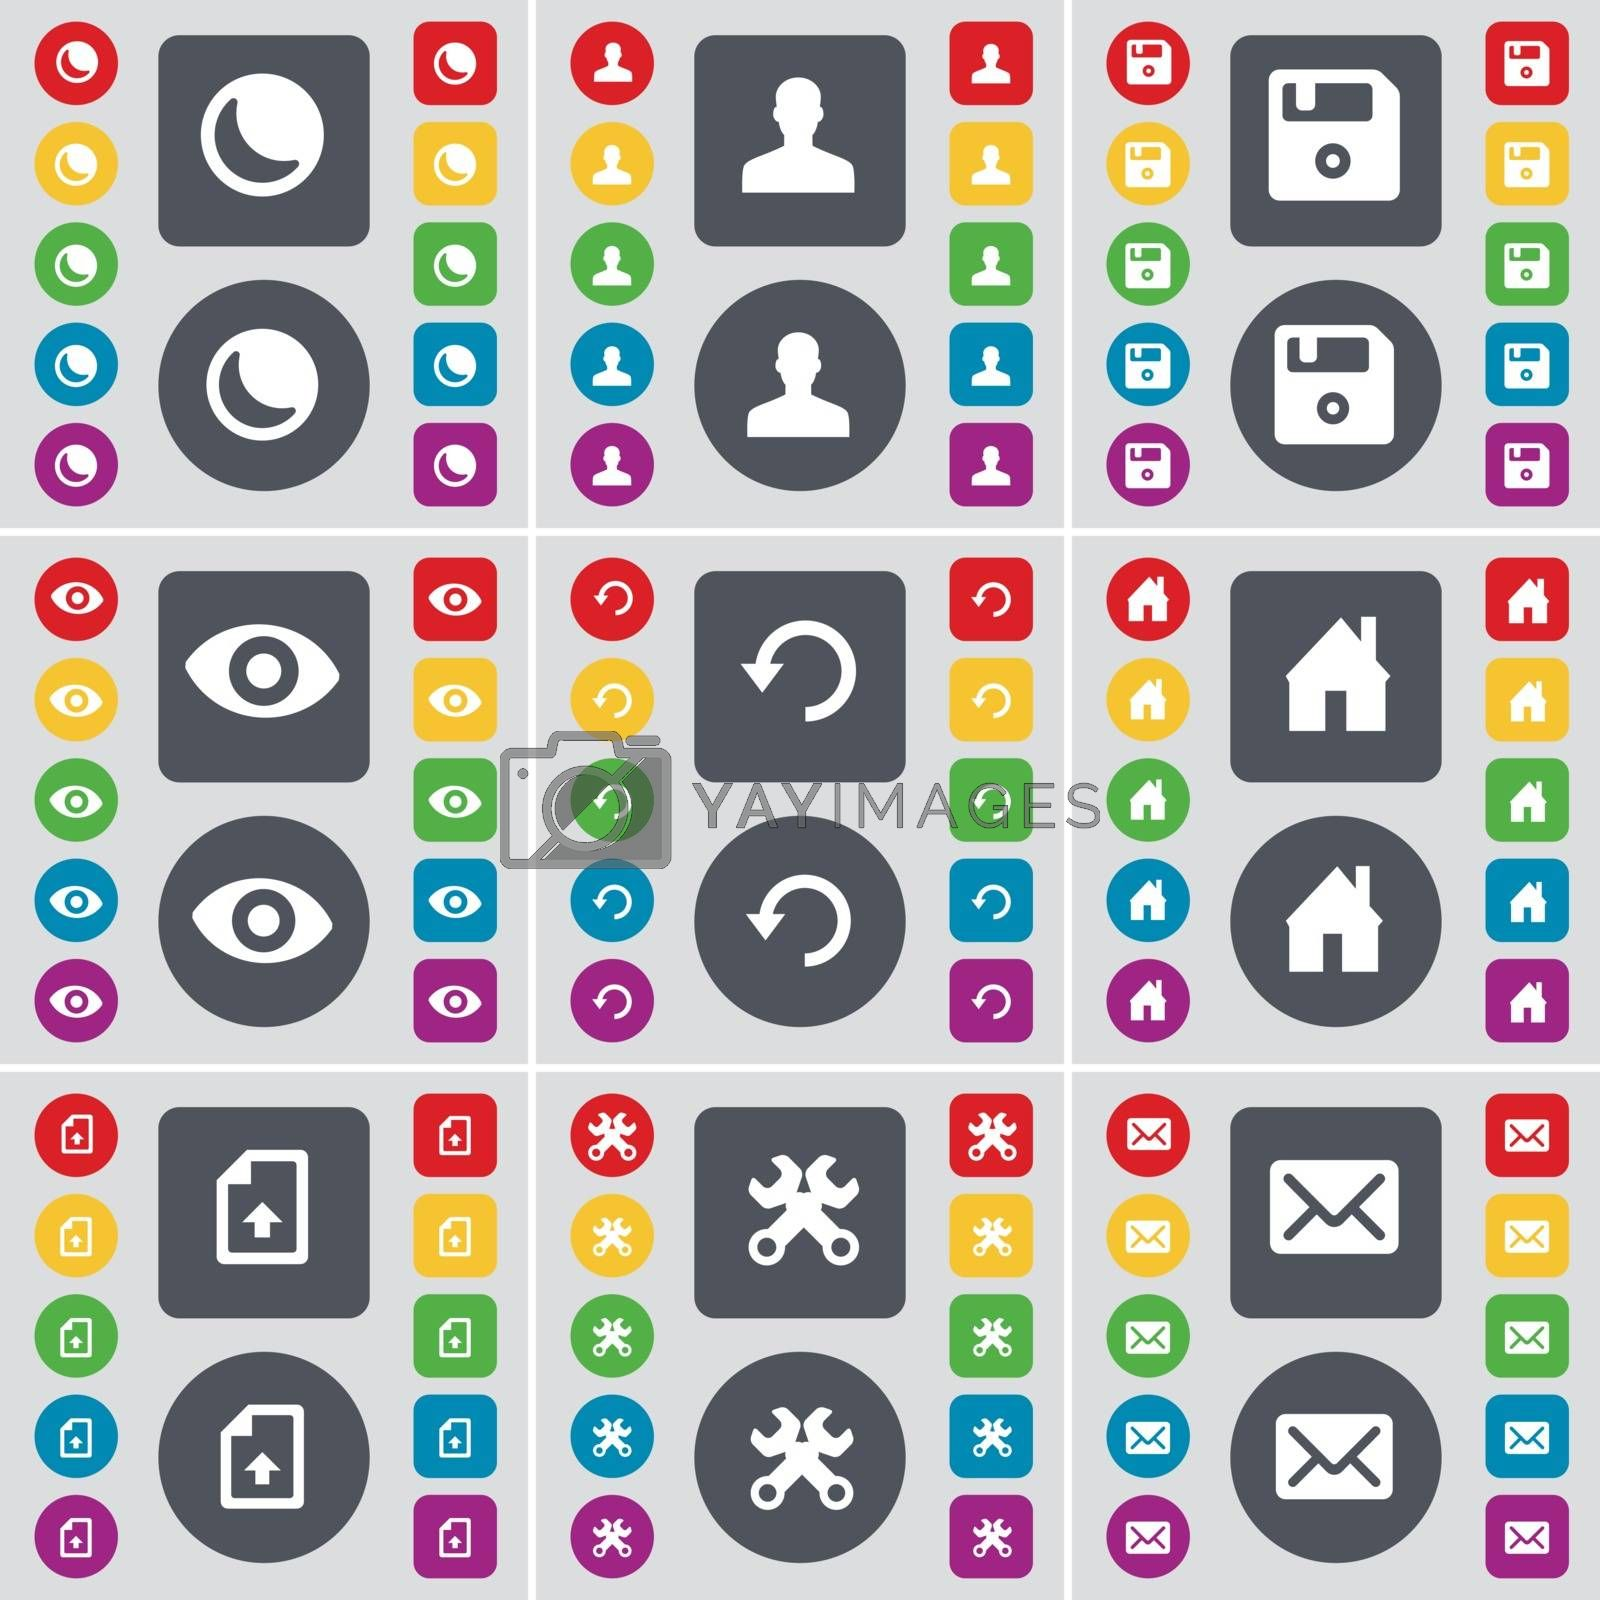 Royalty free image of Moon, Avatar, Floppy, Vision, Reload, House, Upload file, Wrenches, Message icon symbol. A large set of flat, colored buttons for your design. Vector by serhii_lohvyniuk